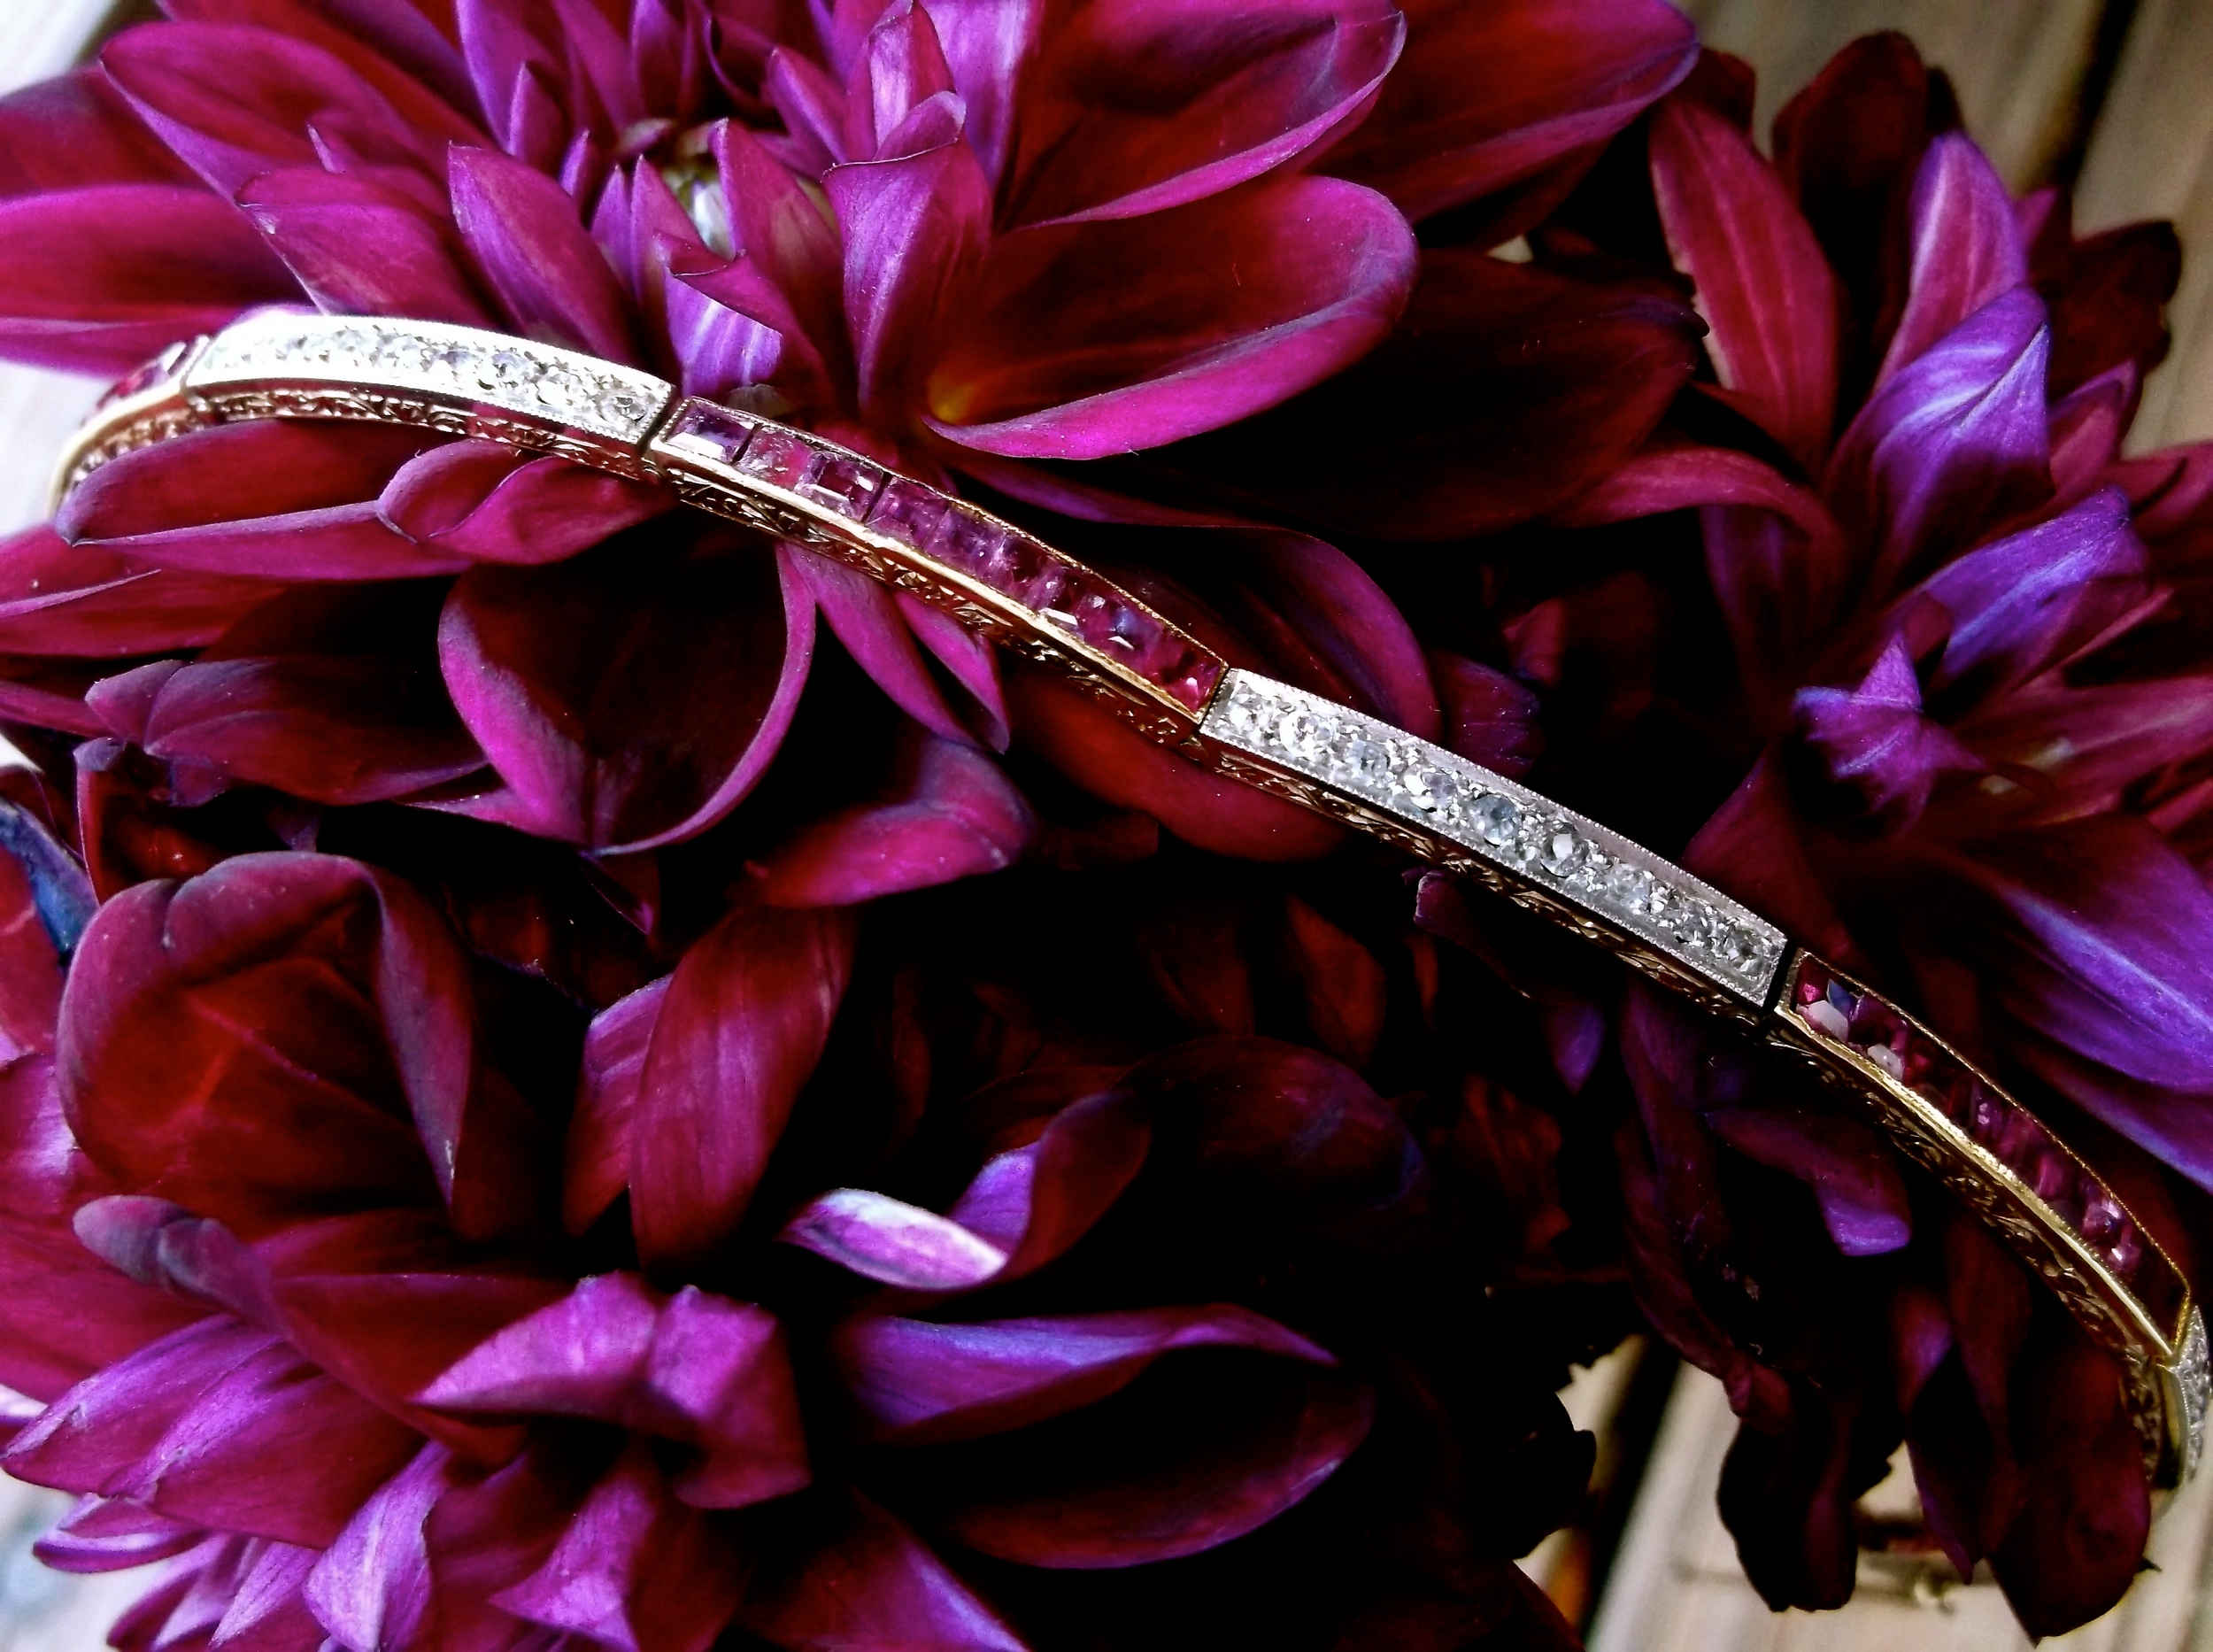 SOLD - Stunning Edwardian Era, platinum topped gold, ruby and diamond bracelet with beautiful hand engraved detail along the sides.